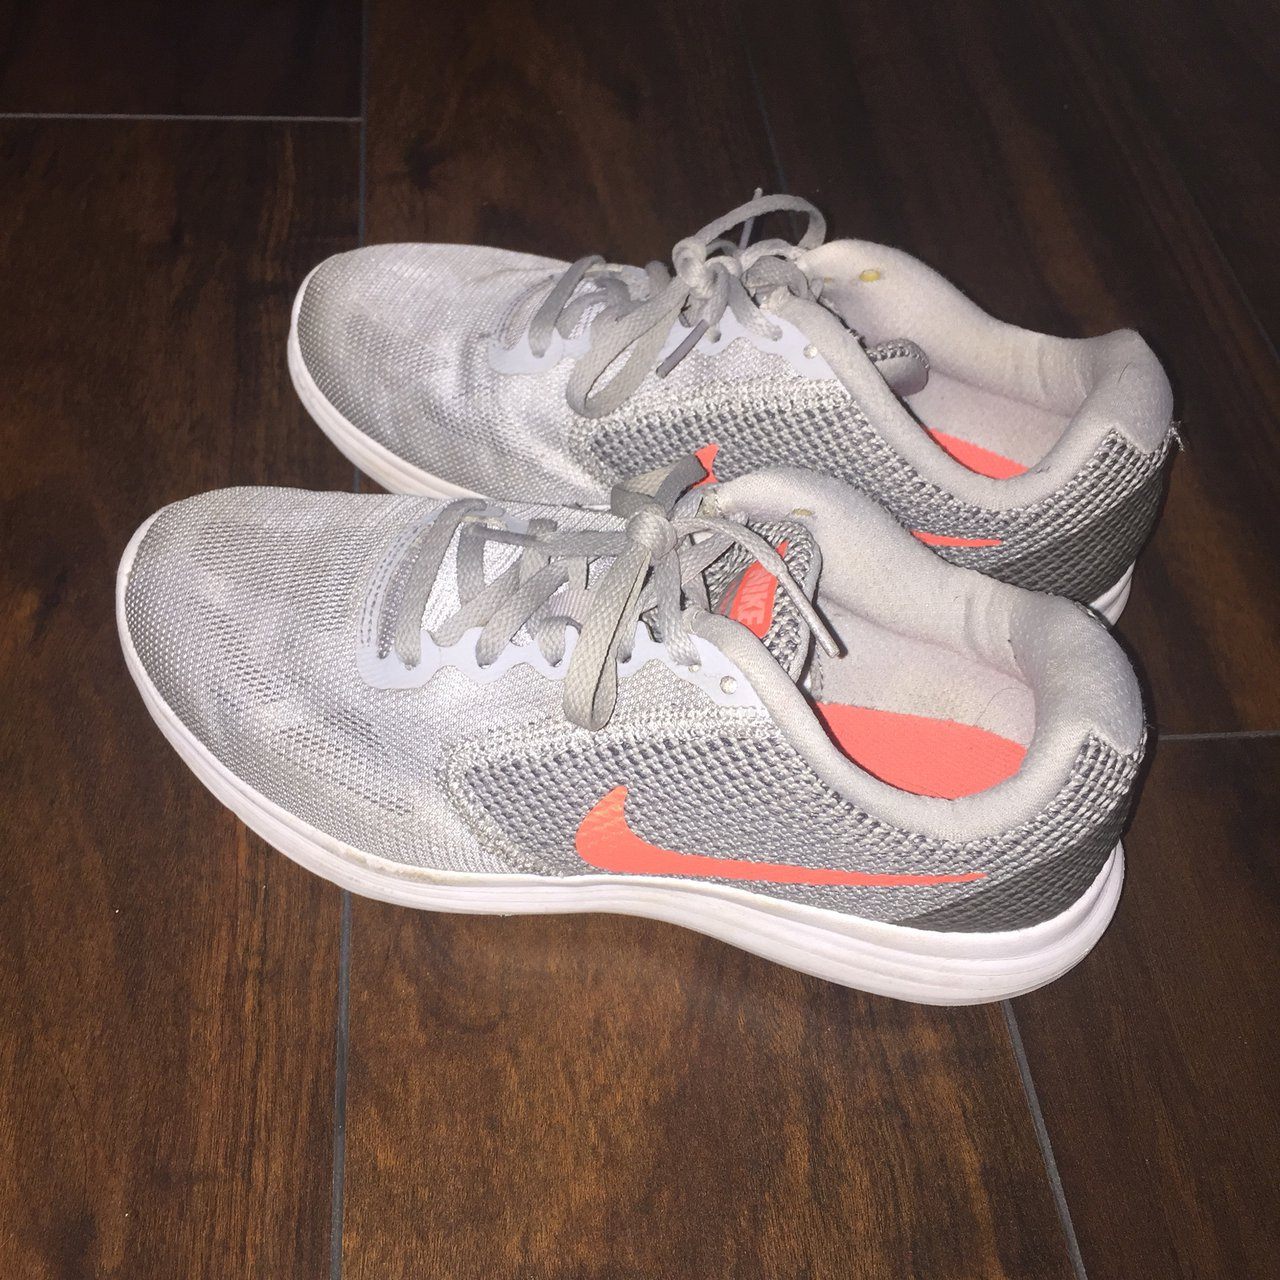 new product a02ca 9706a  ahlam a1. 9 months ago. Pearland, United States. Nike REVOLUTION 3. Women s  Wolf Grey   Hyper Orange Comfort Running Shoes.